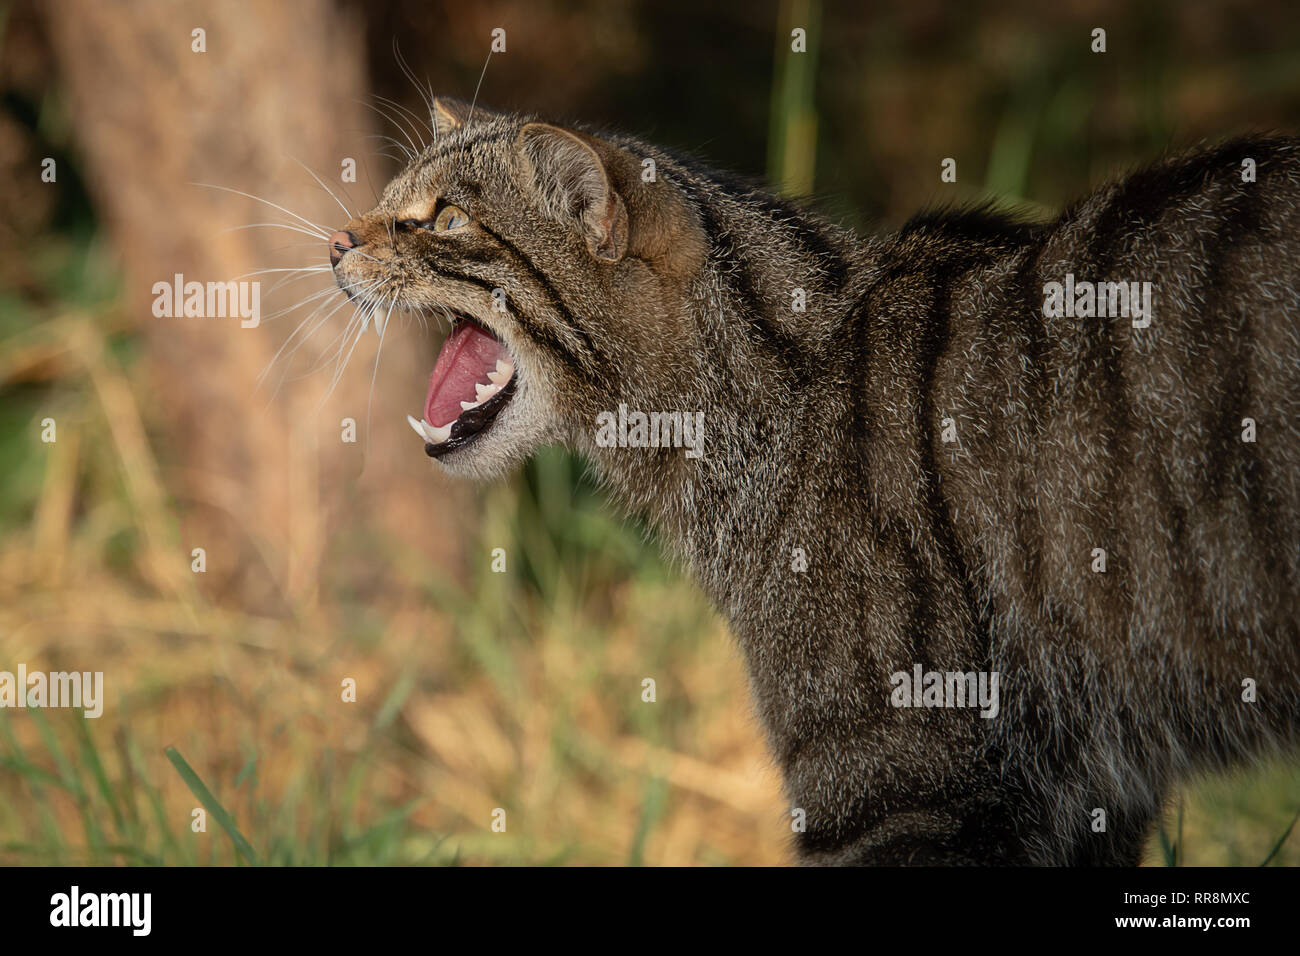 A close up side view portrait of a scottish wildcat facing to the left with its mouth open snarling and showing teeth - Stock Image